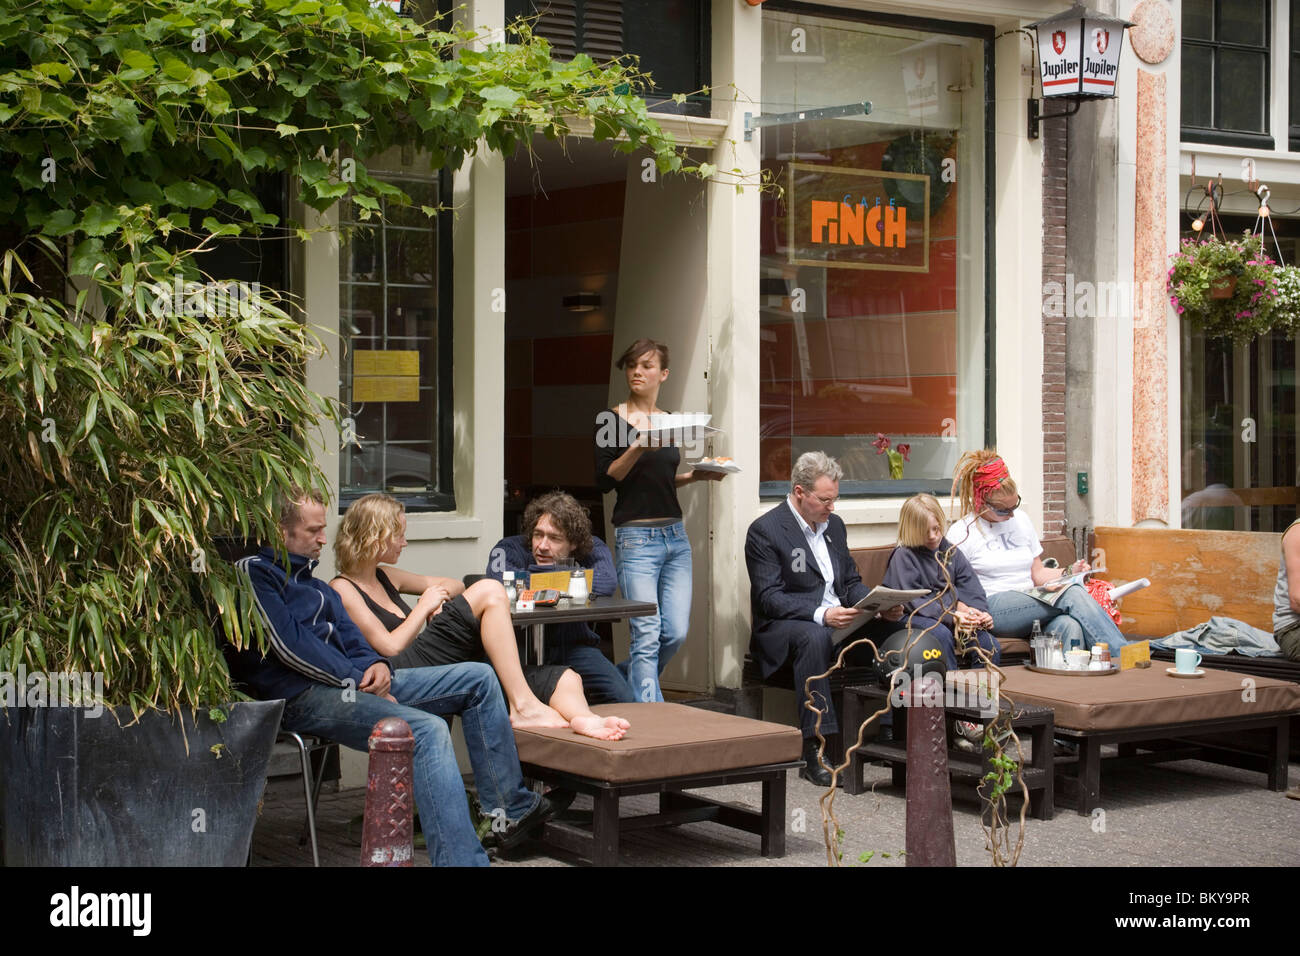 People, Cafe Finch, Jordaan, Waitress serves guests something to eat outside, Cafe Finch, Jordaan, Amsterdam, Holland, - Stock Image